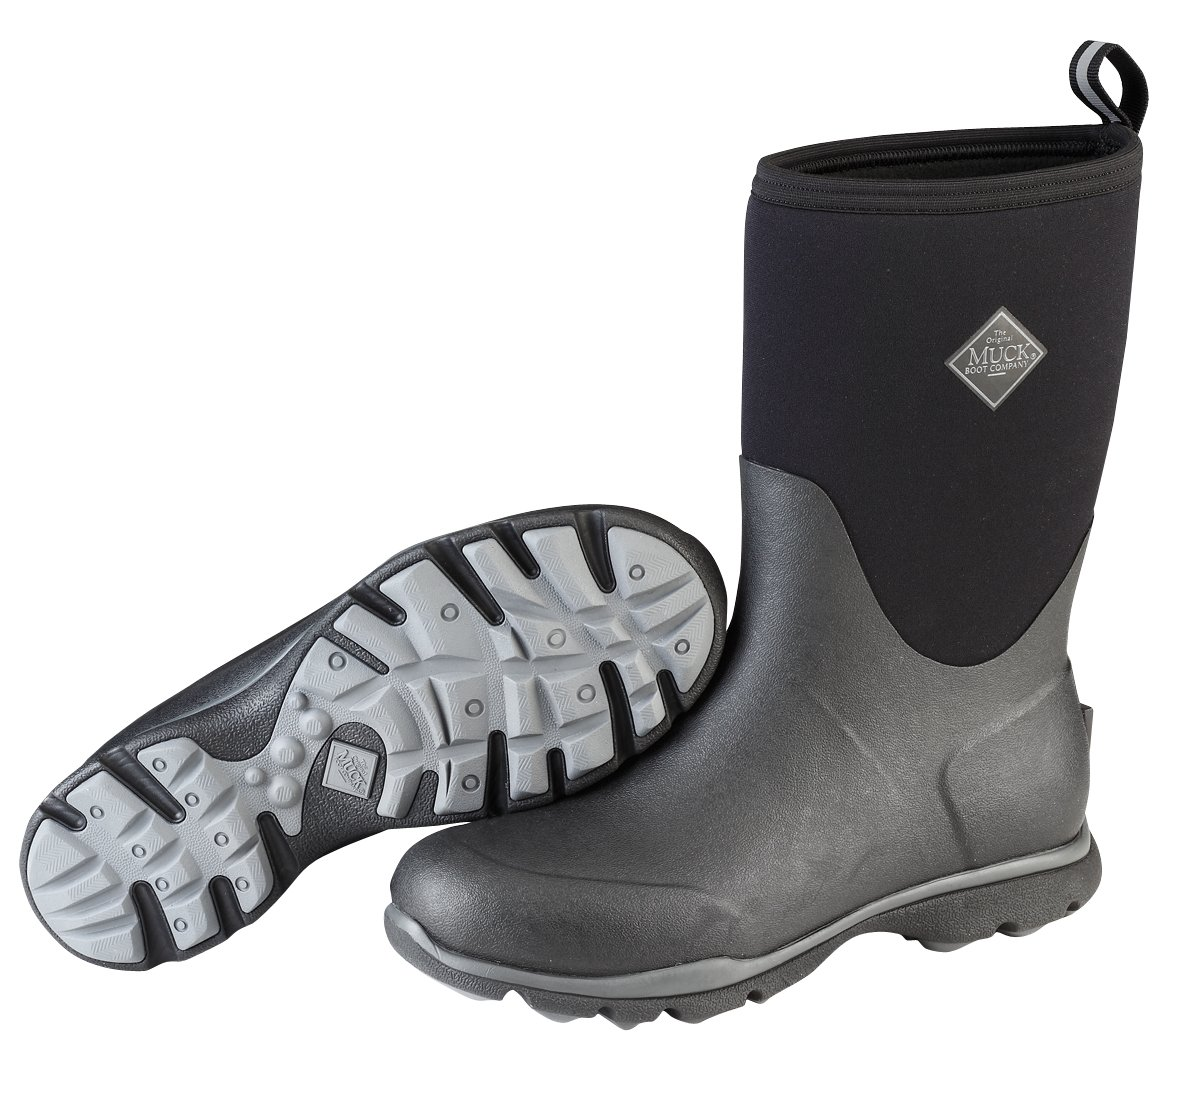 Muck Arctic Excursion Mid-Height Rubber Men's Winter Boots by Muck Boot